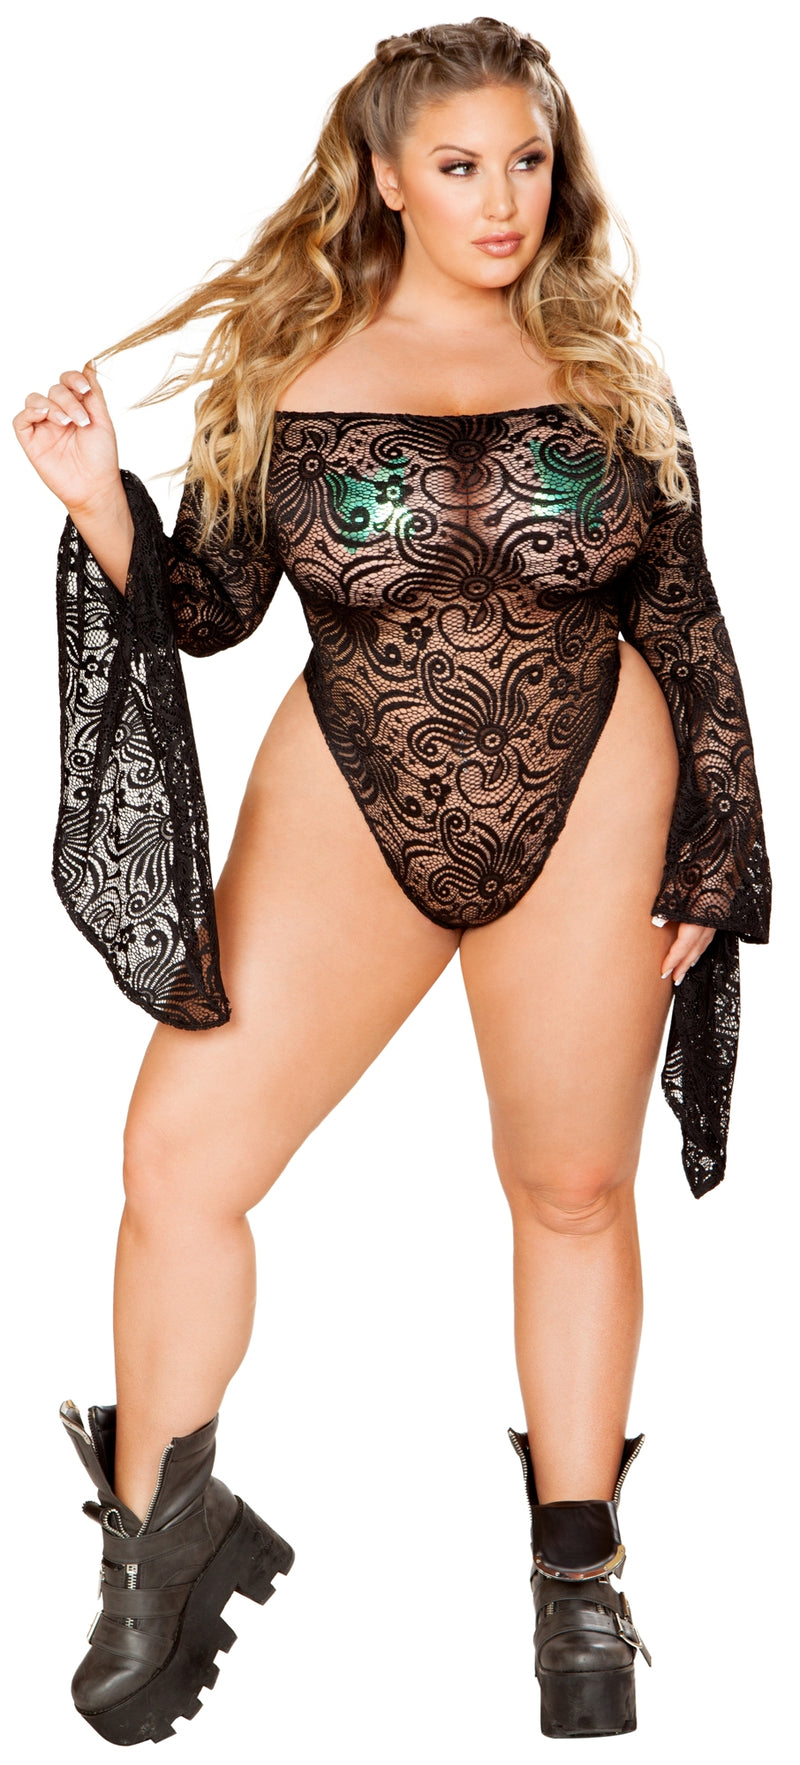 JV-FF112 Off the shoulder lace gypsy sleeve bodysuit plus black